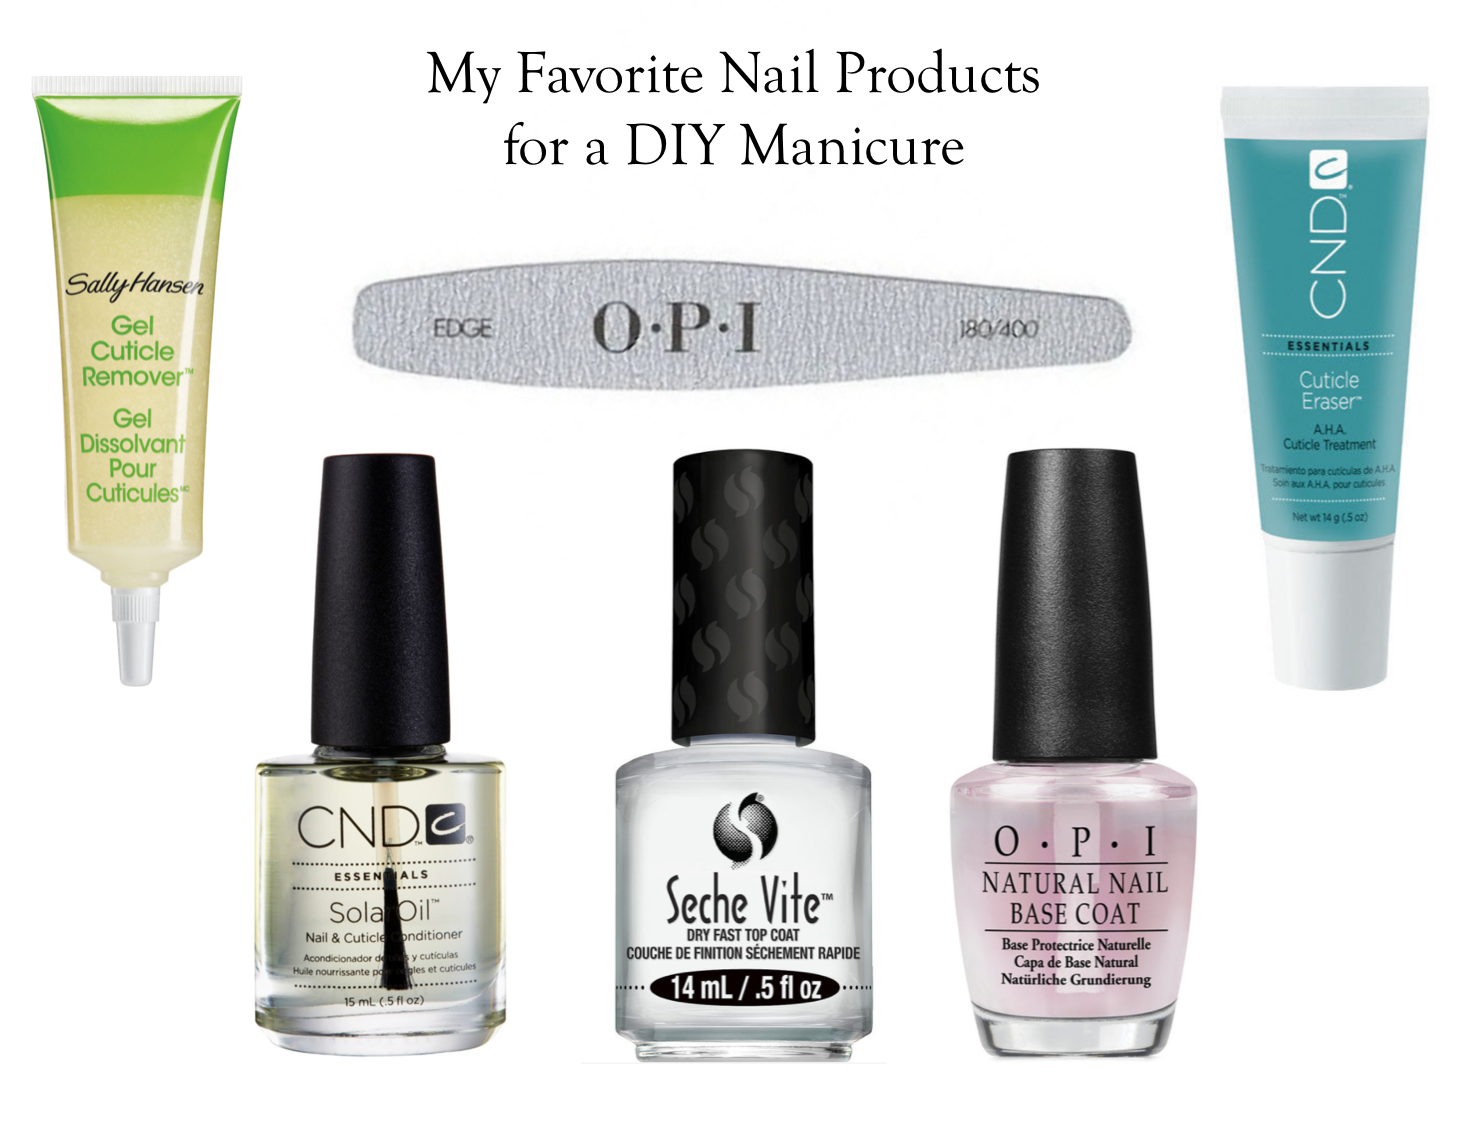 nailproducts